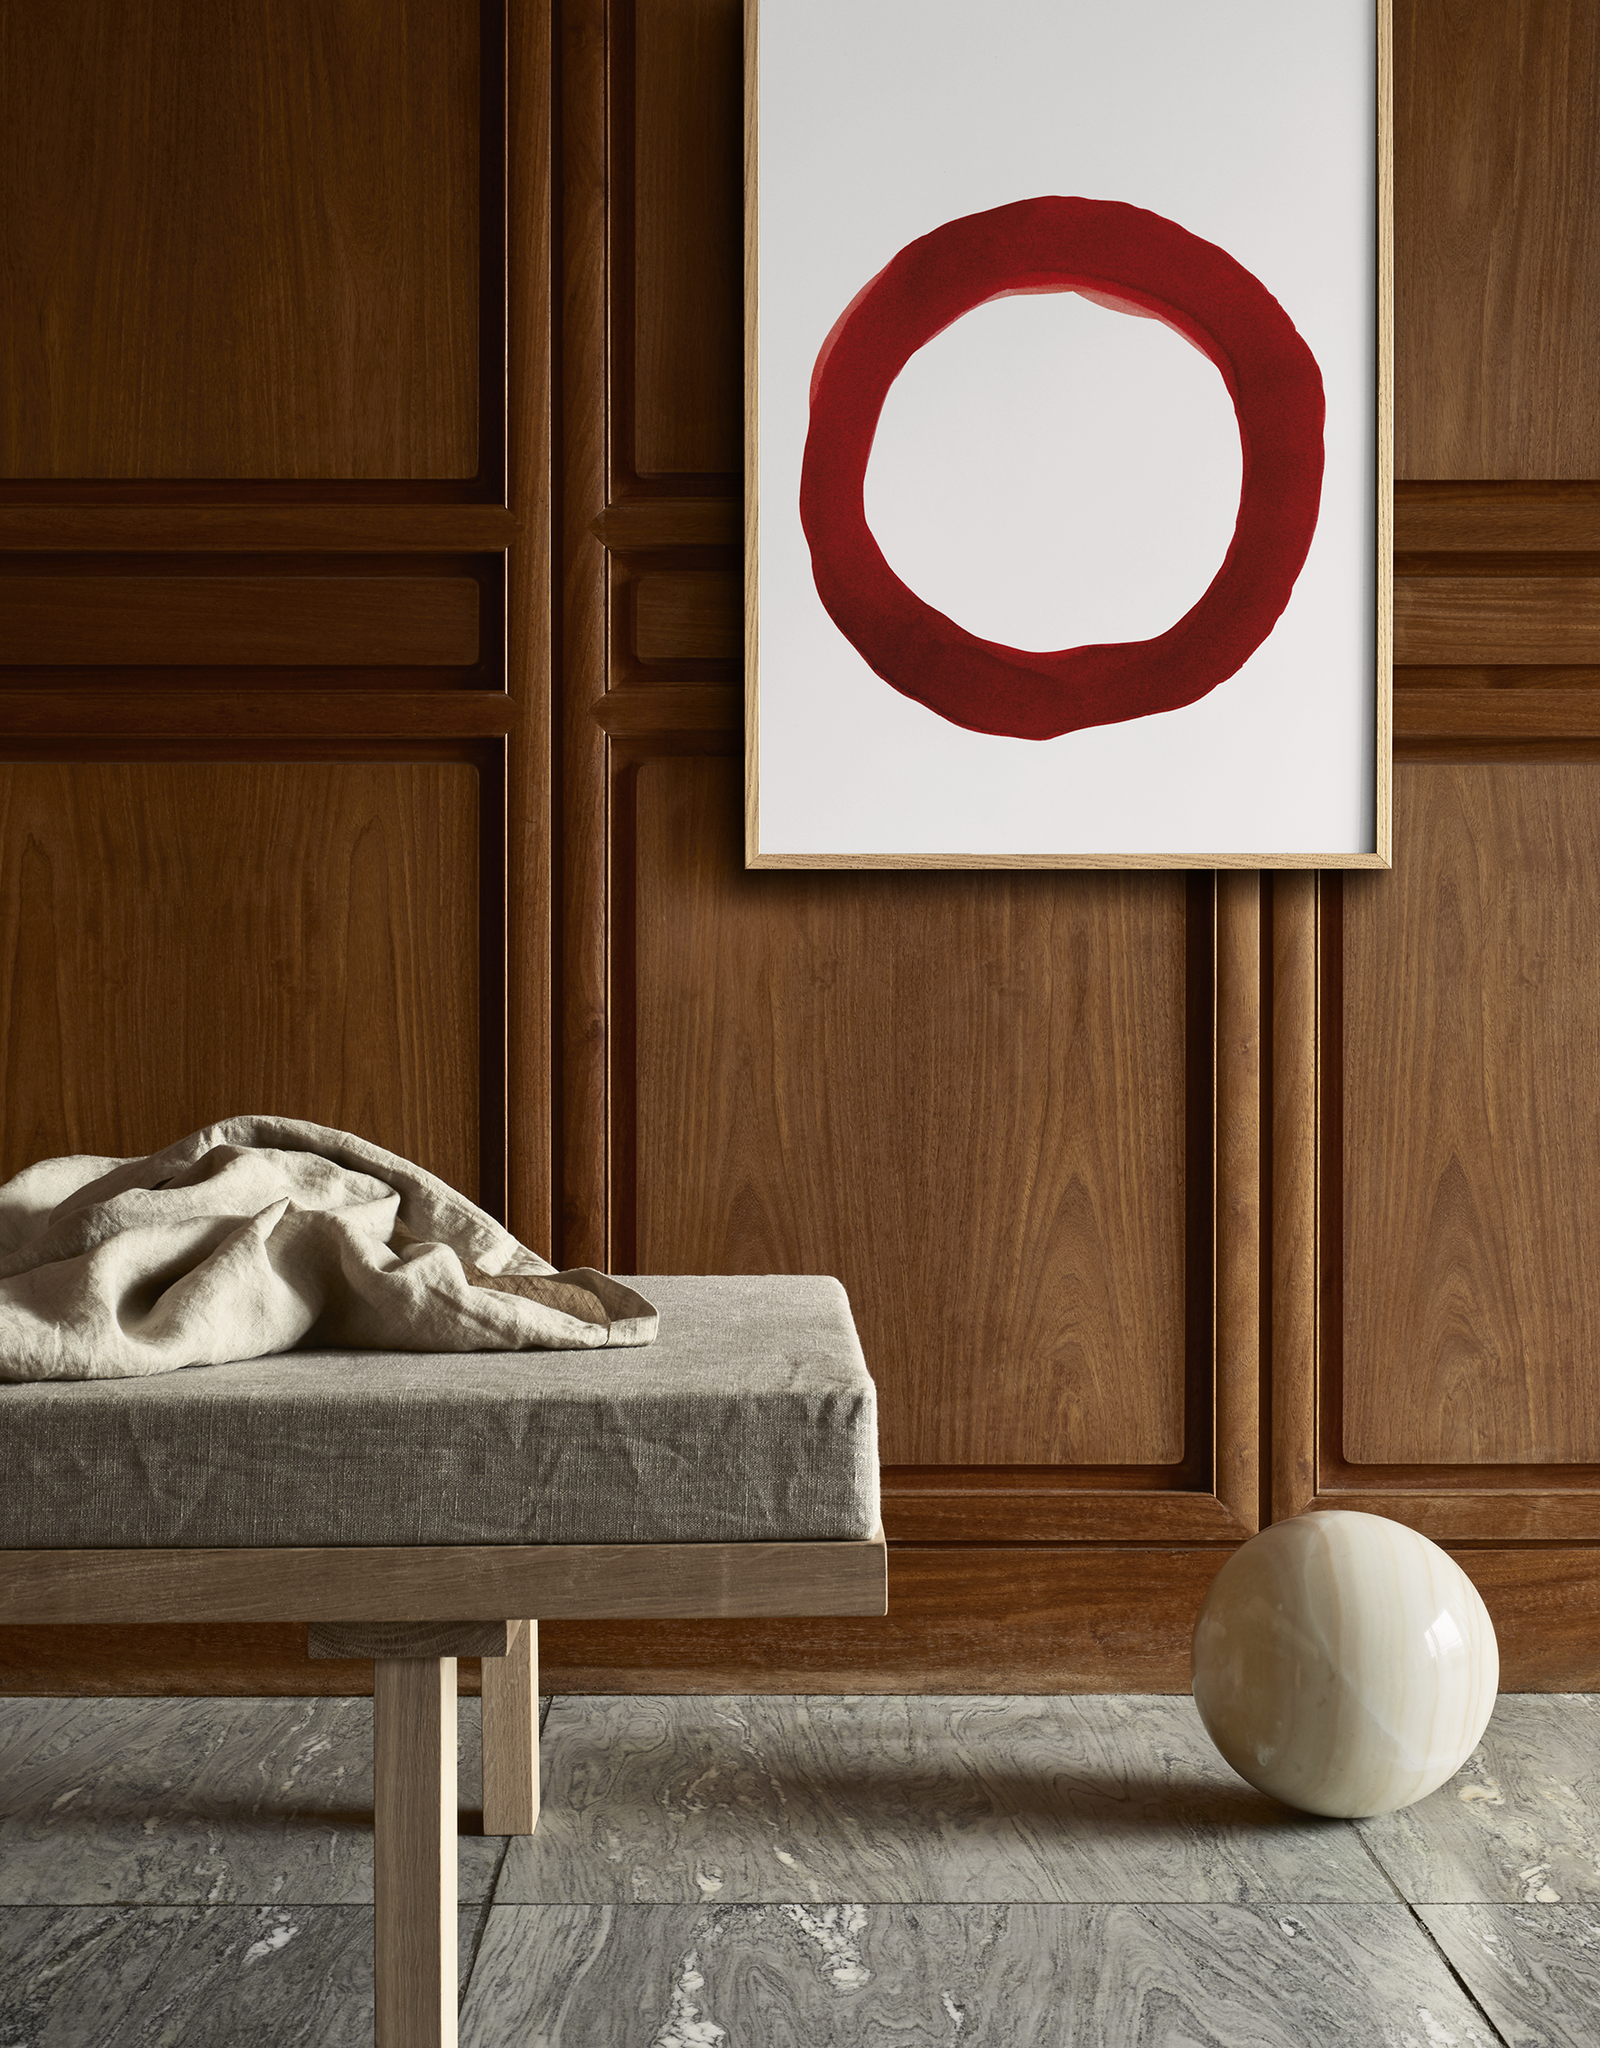 Paper Collective Paper Collective Poster Norm Architects Enso Red IV 50x70